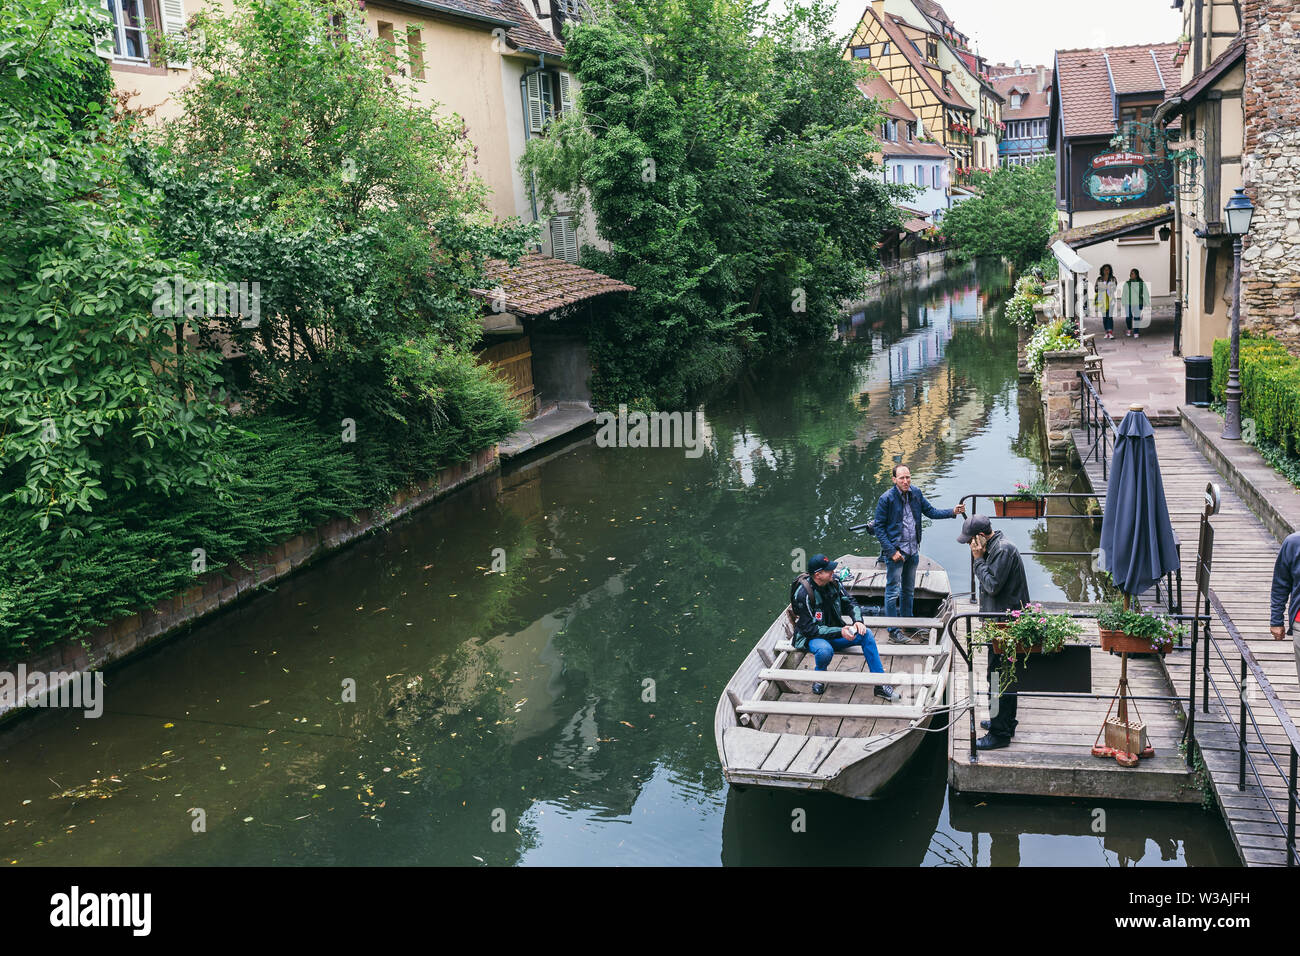 Colmar, France - July 26, 2017. picturesque water channel along the old houses in Colmar, Alsace - Stock Image